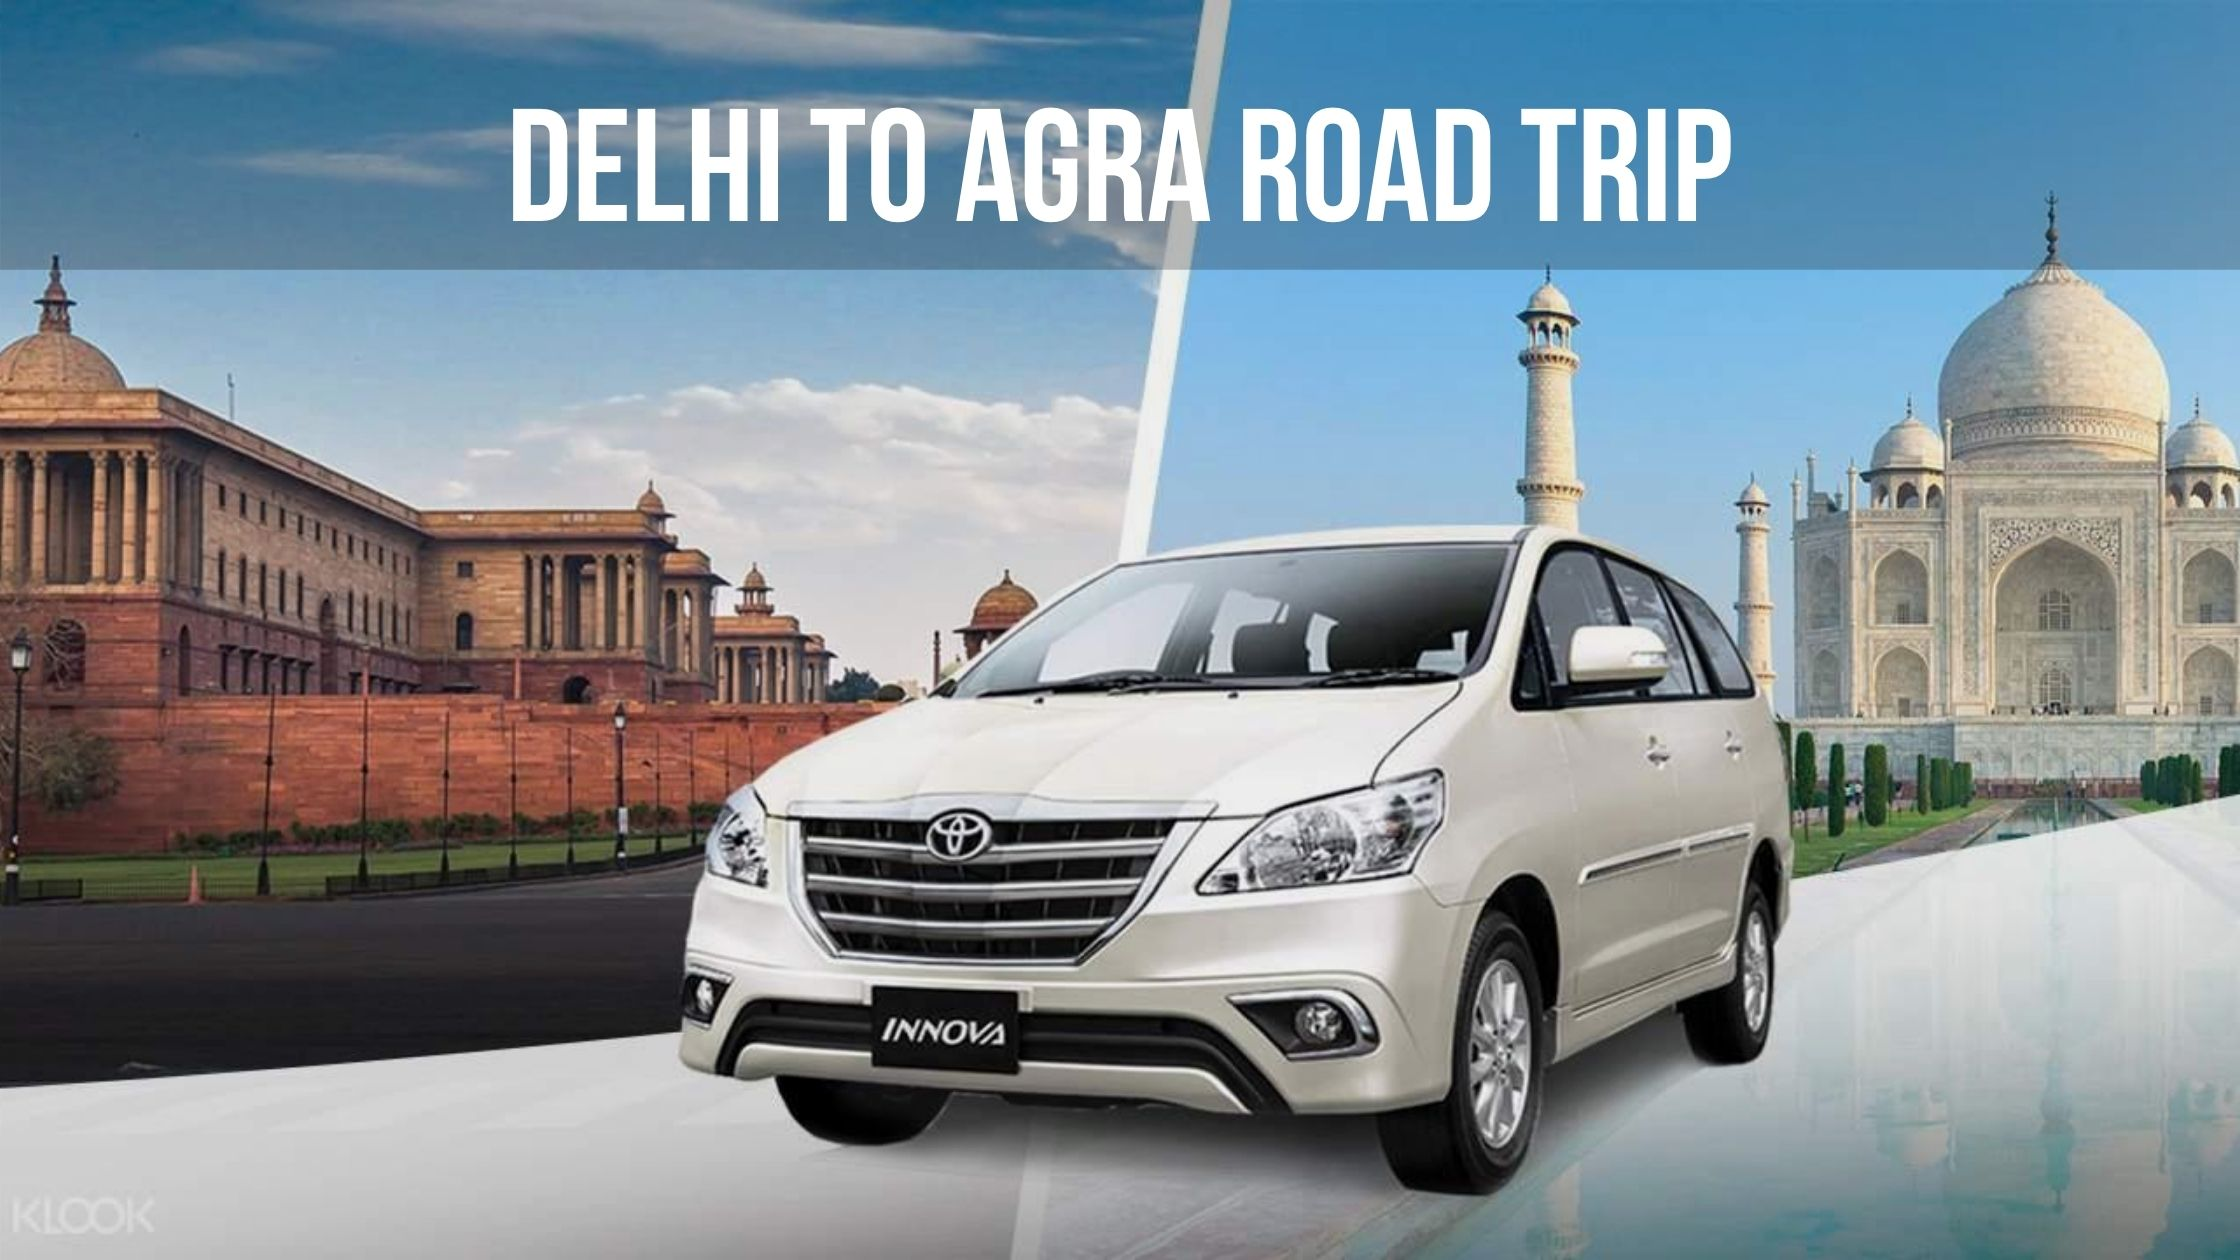 How To Plan Delhi To Agra Road Trip